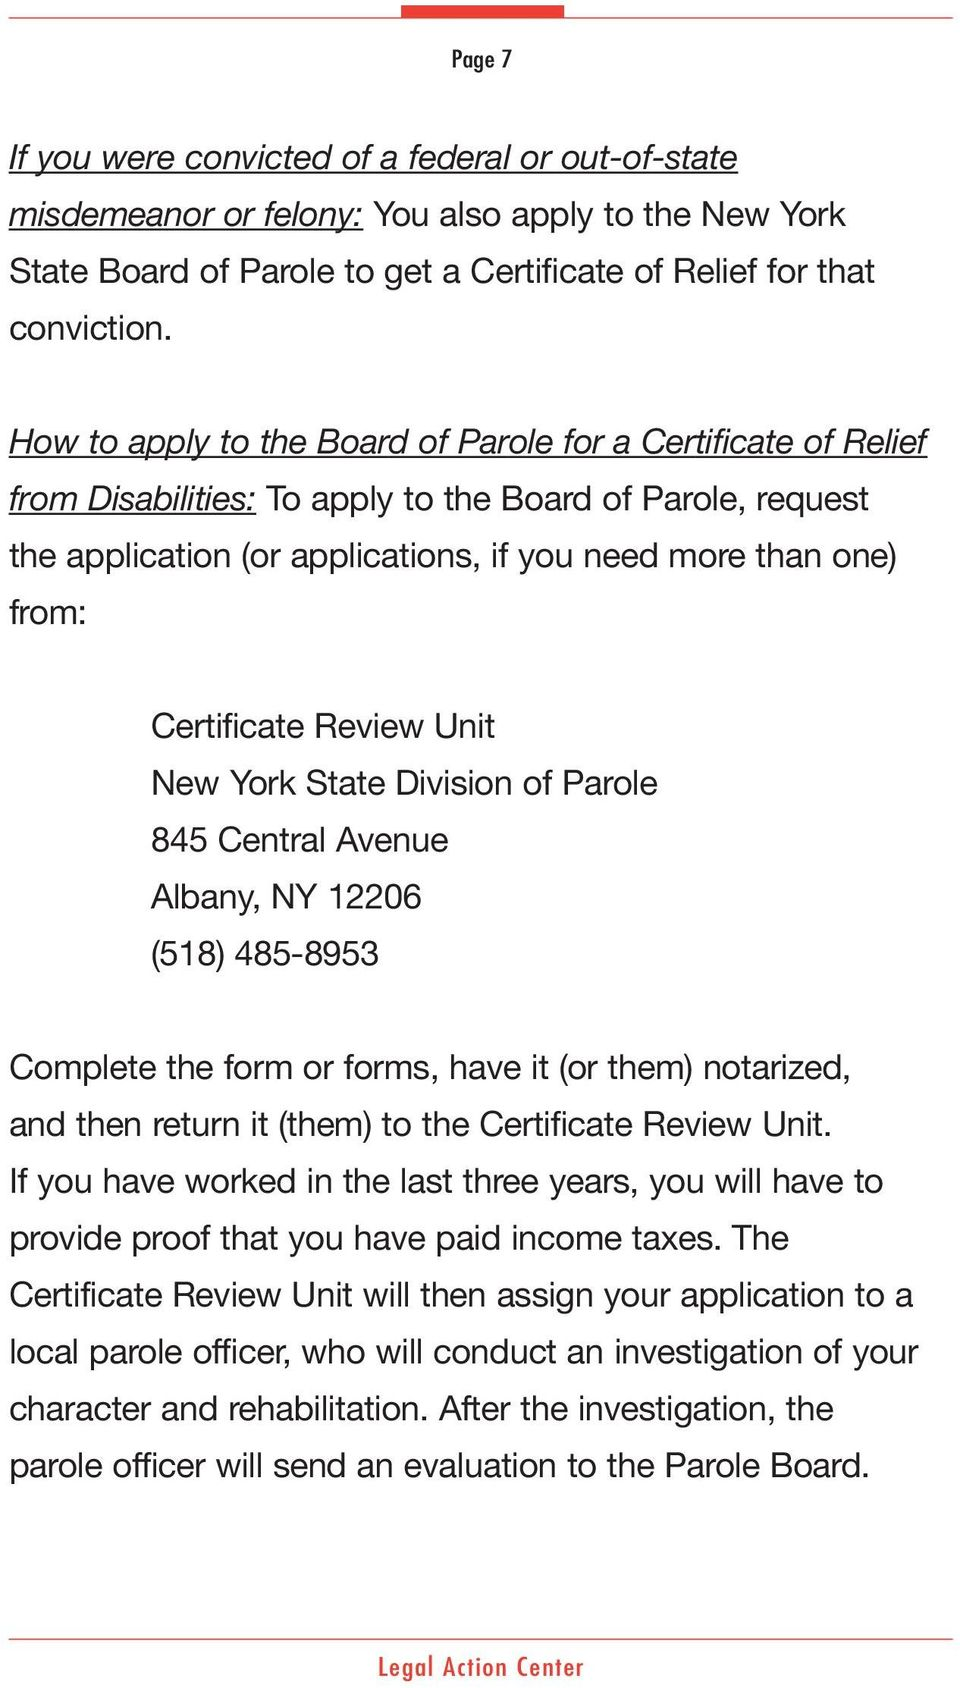 Certificate Review Unit New York State Division of Parole 845 Central Avenue Albany, NY 12206 (518) 485-8953 Complete the form or forms, have it (or them) notarized, and then return it (them) to the